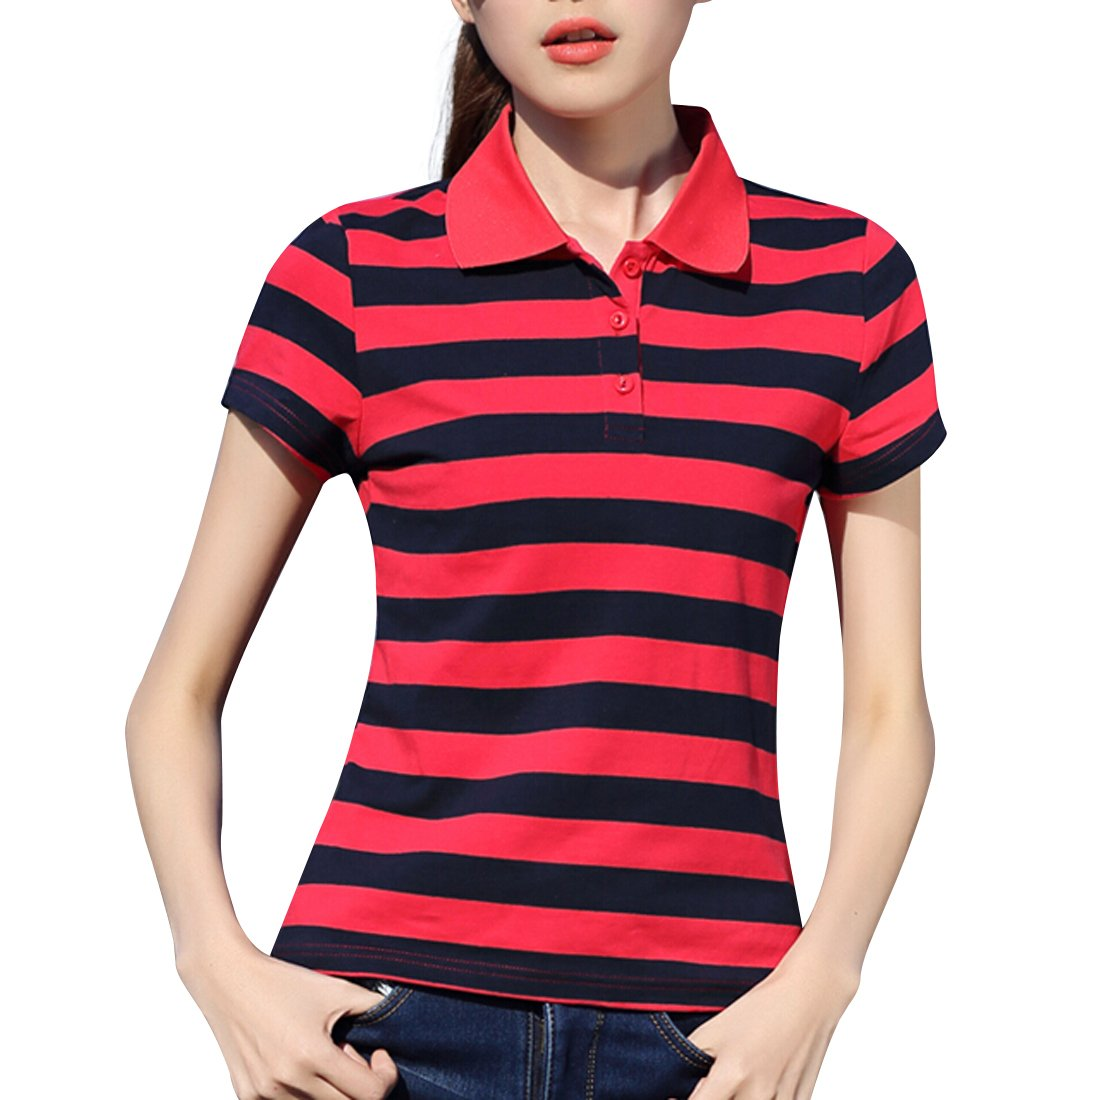 AEROBIC Womens Sport Polo Shirt Summer Casual Short Stripe Tennis Shirt